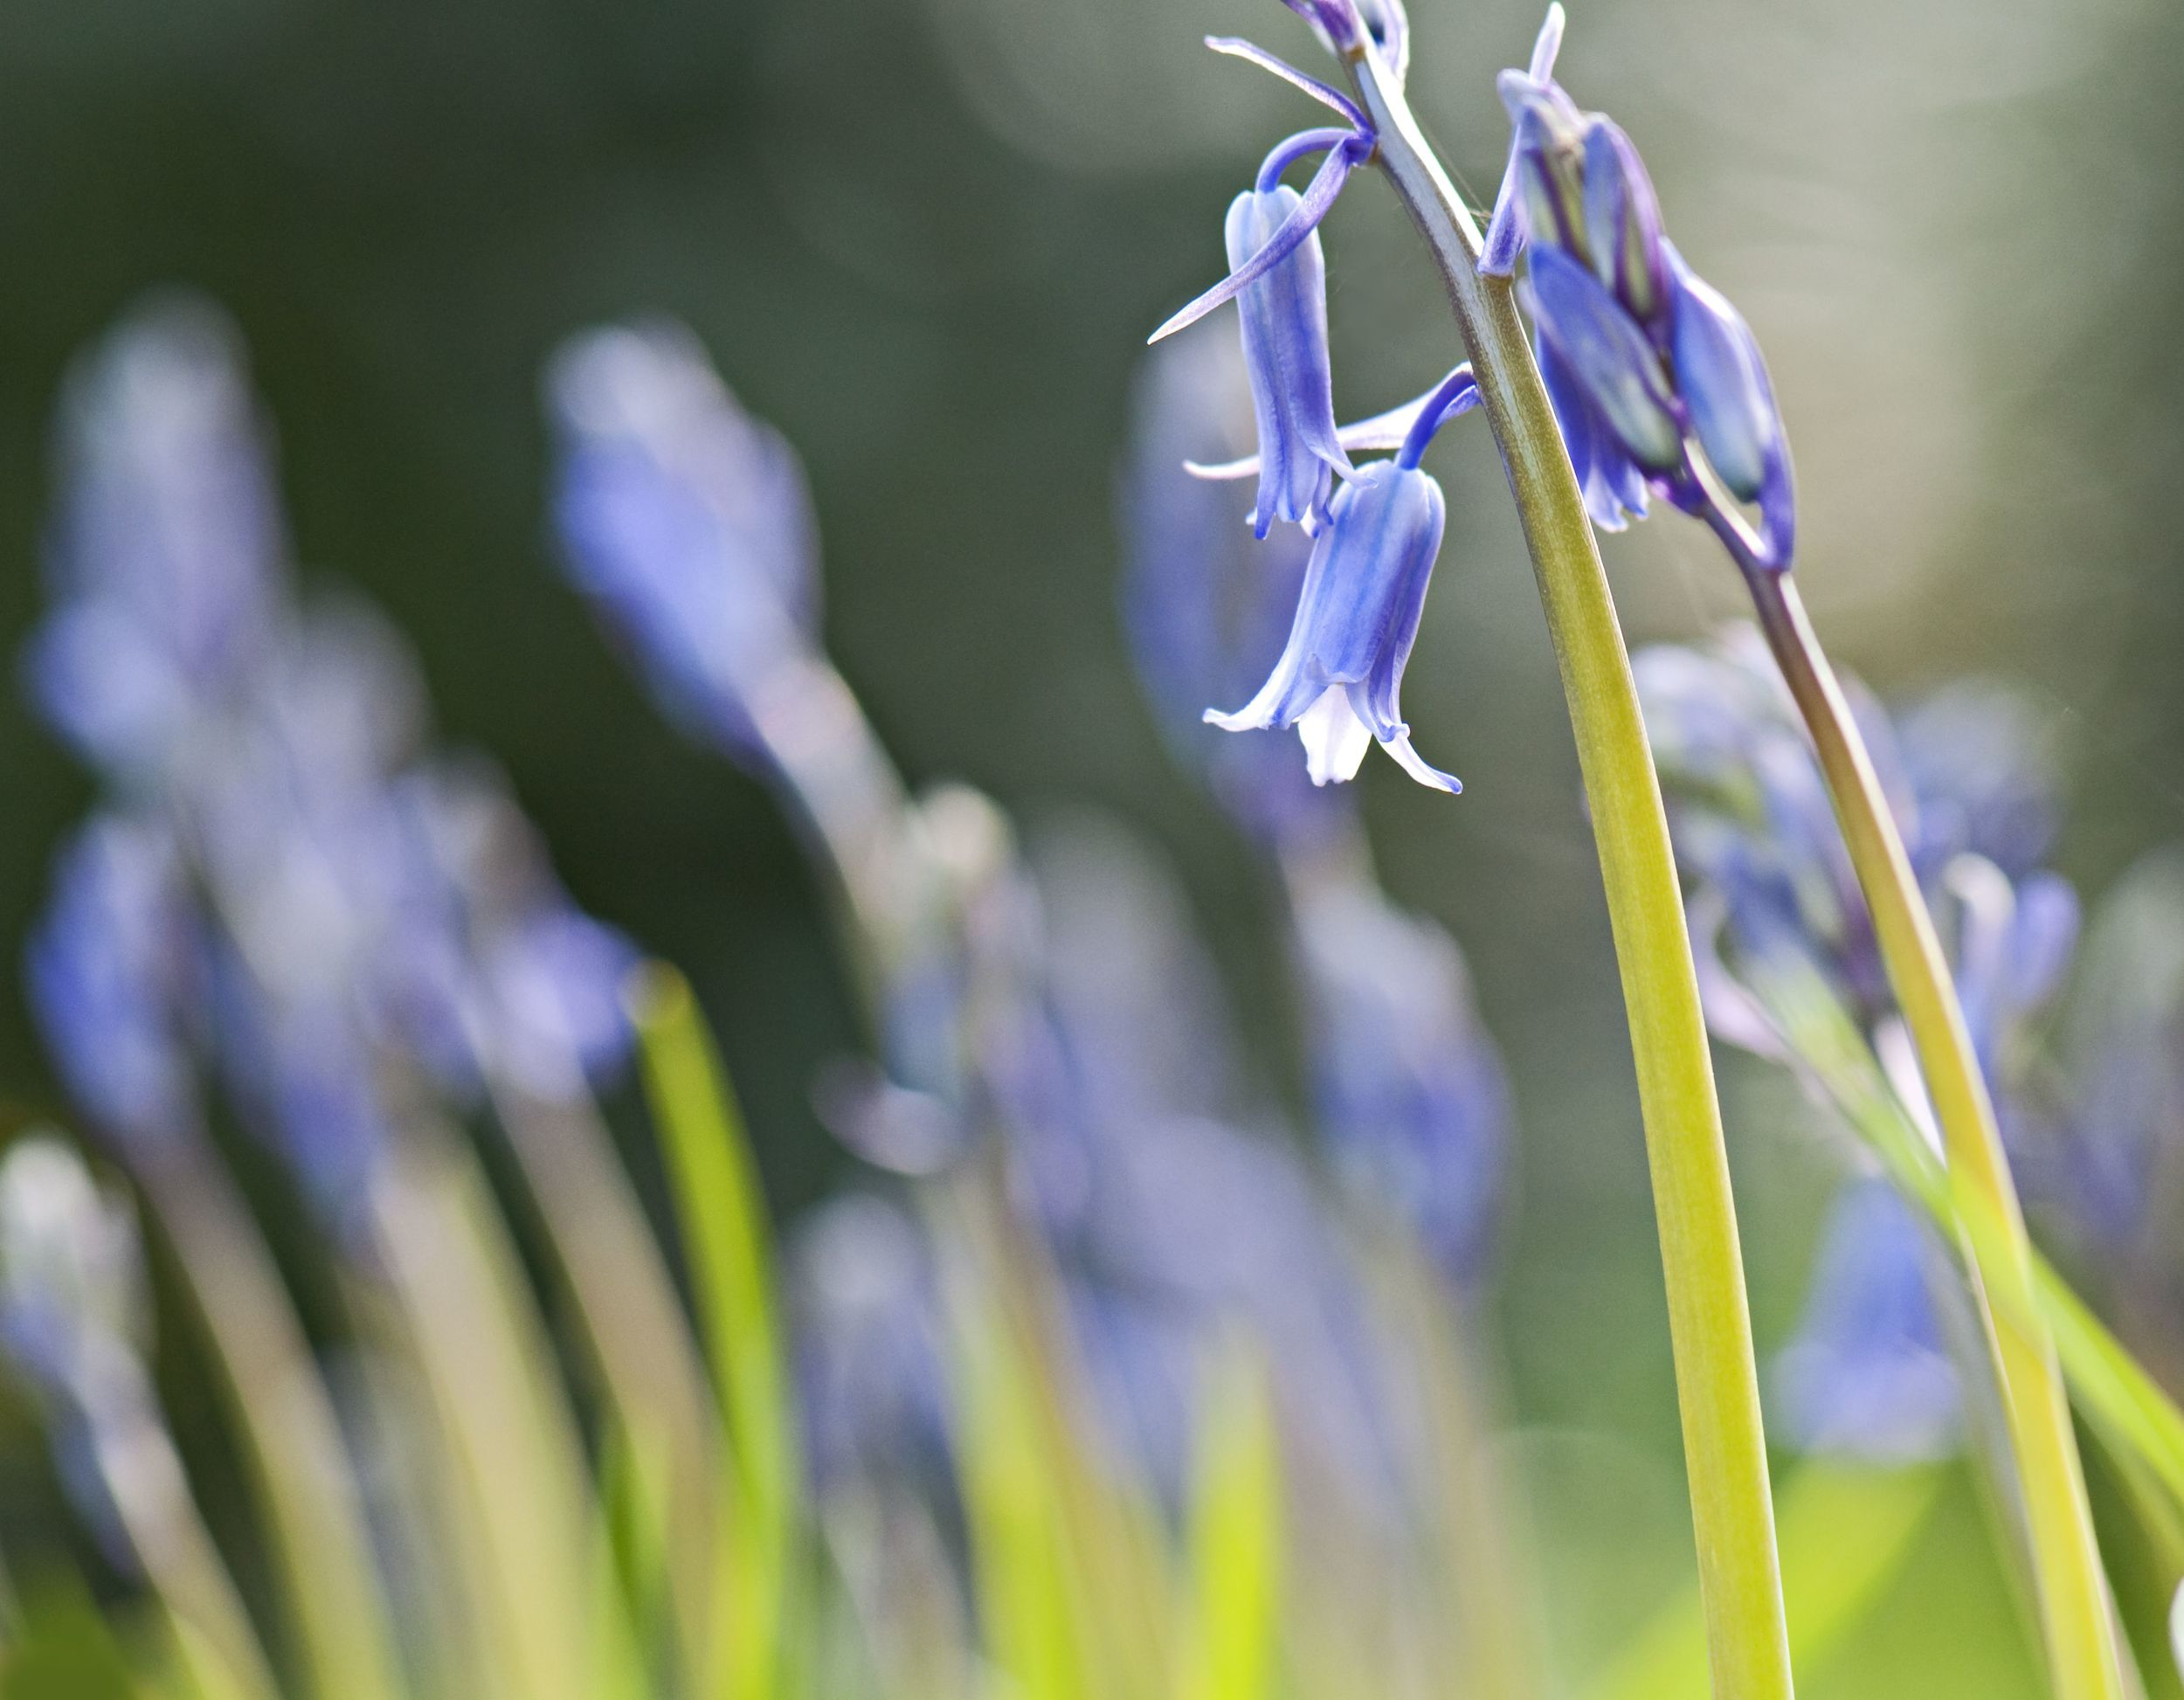 The bluebells are coming into their own